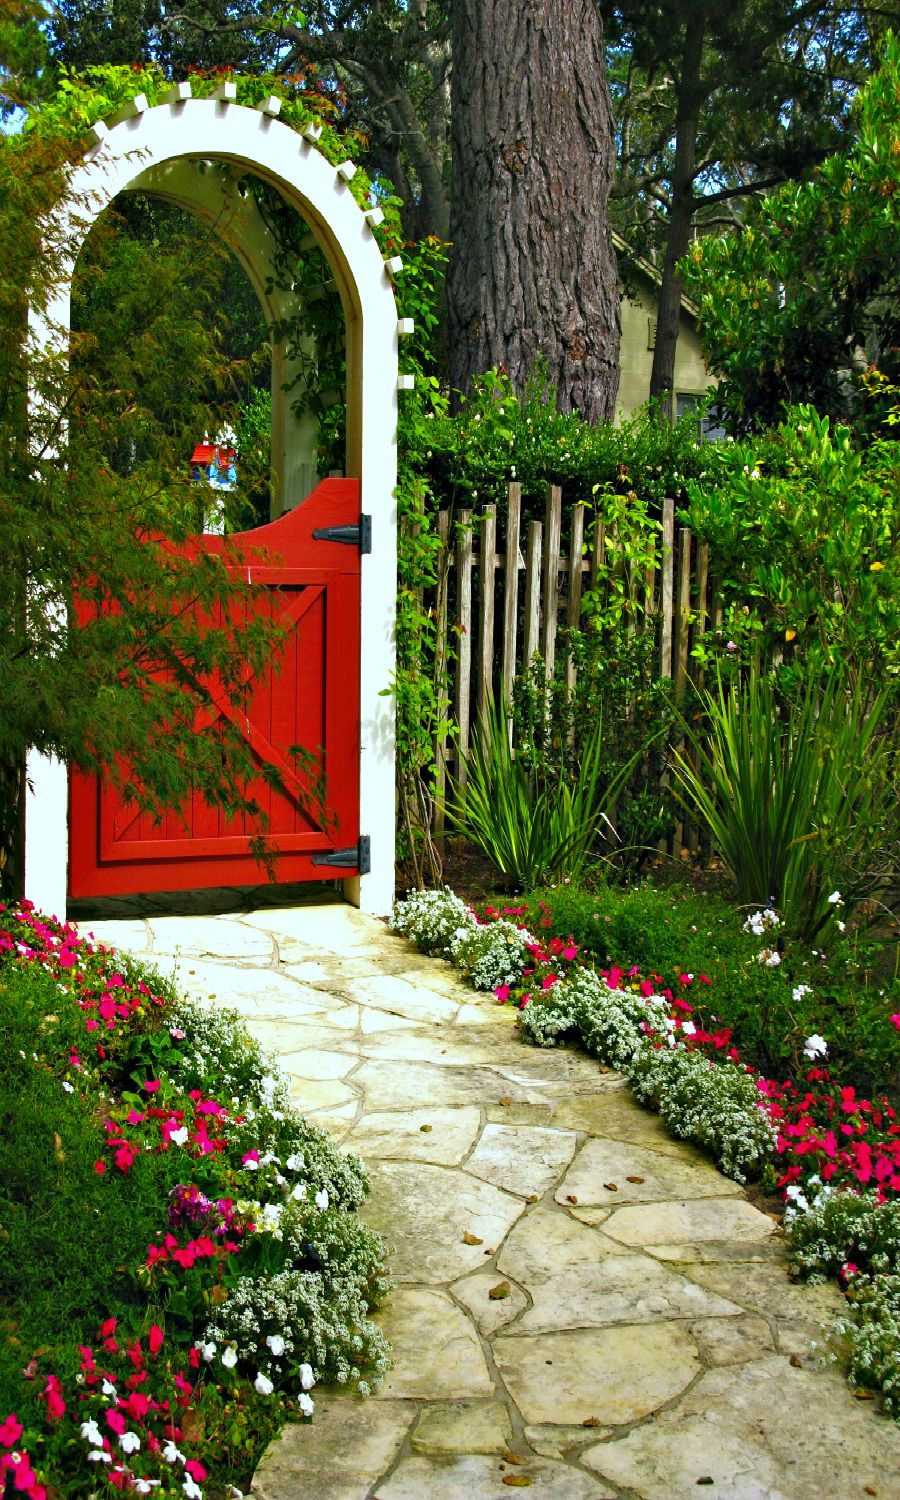 Attractive Colorful Entrance ~ Love The Idea Of Adding Color To The Traditional Garden  Gate!